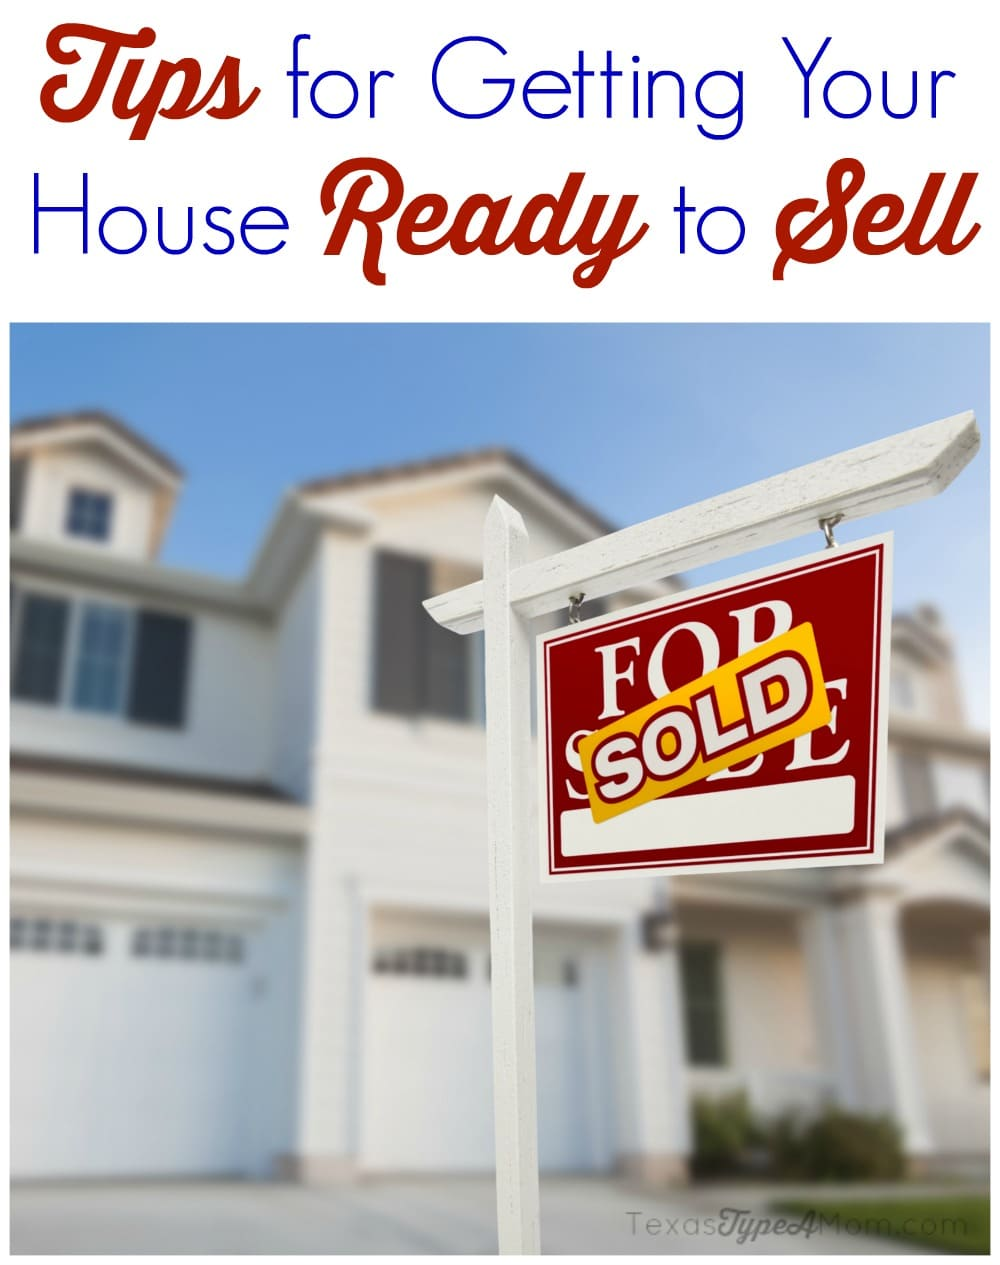 Tips for Getting Your House Ready to Sell